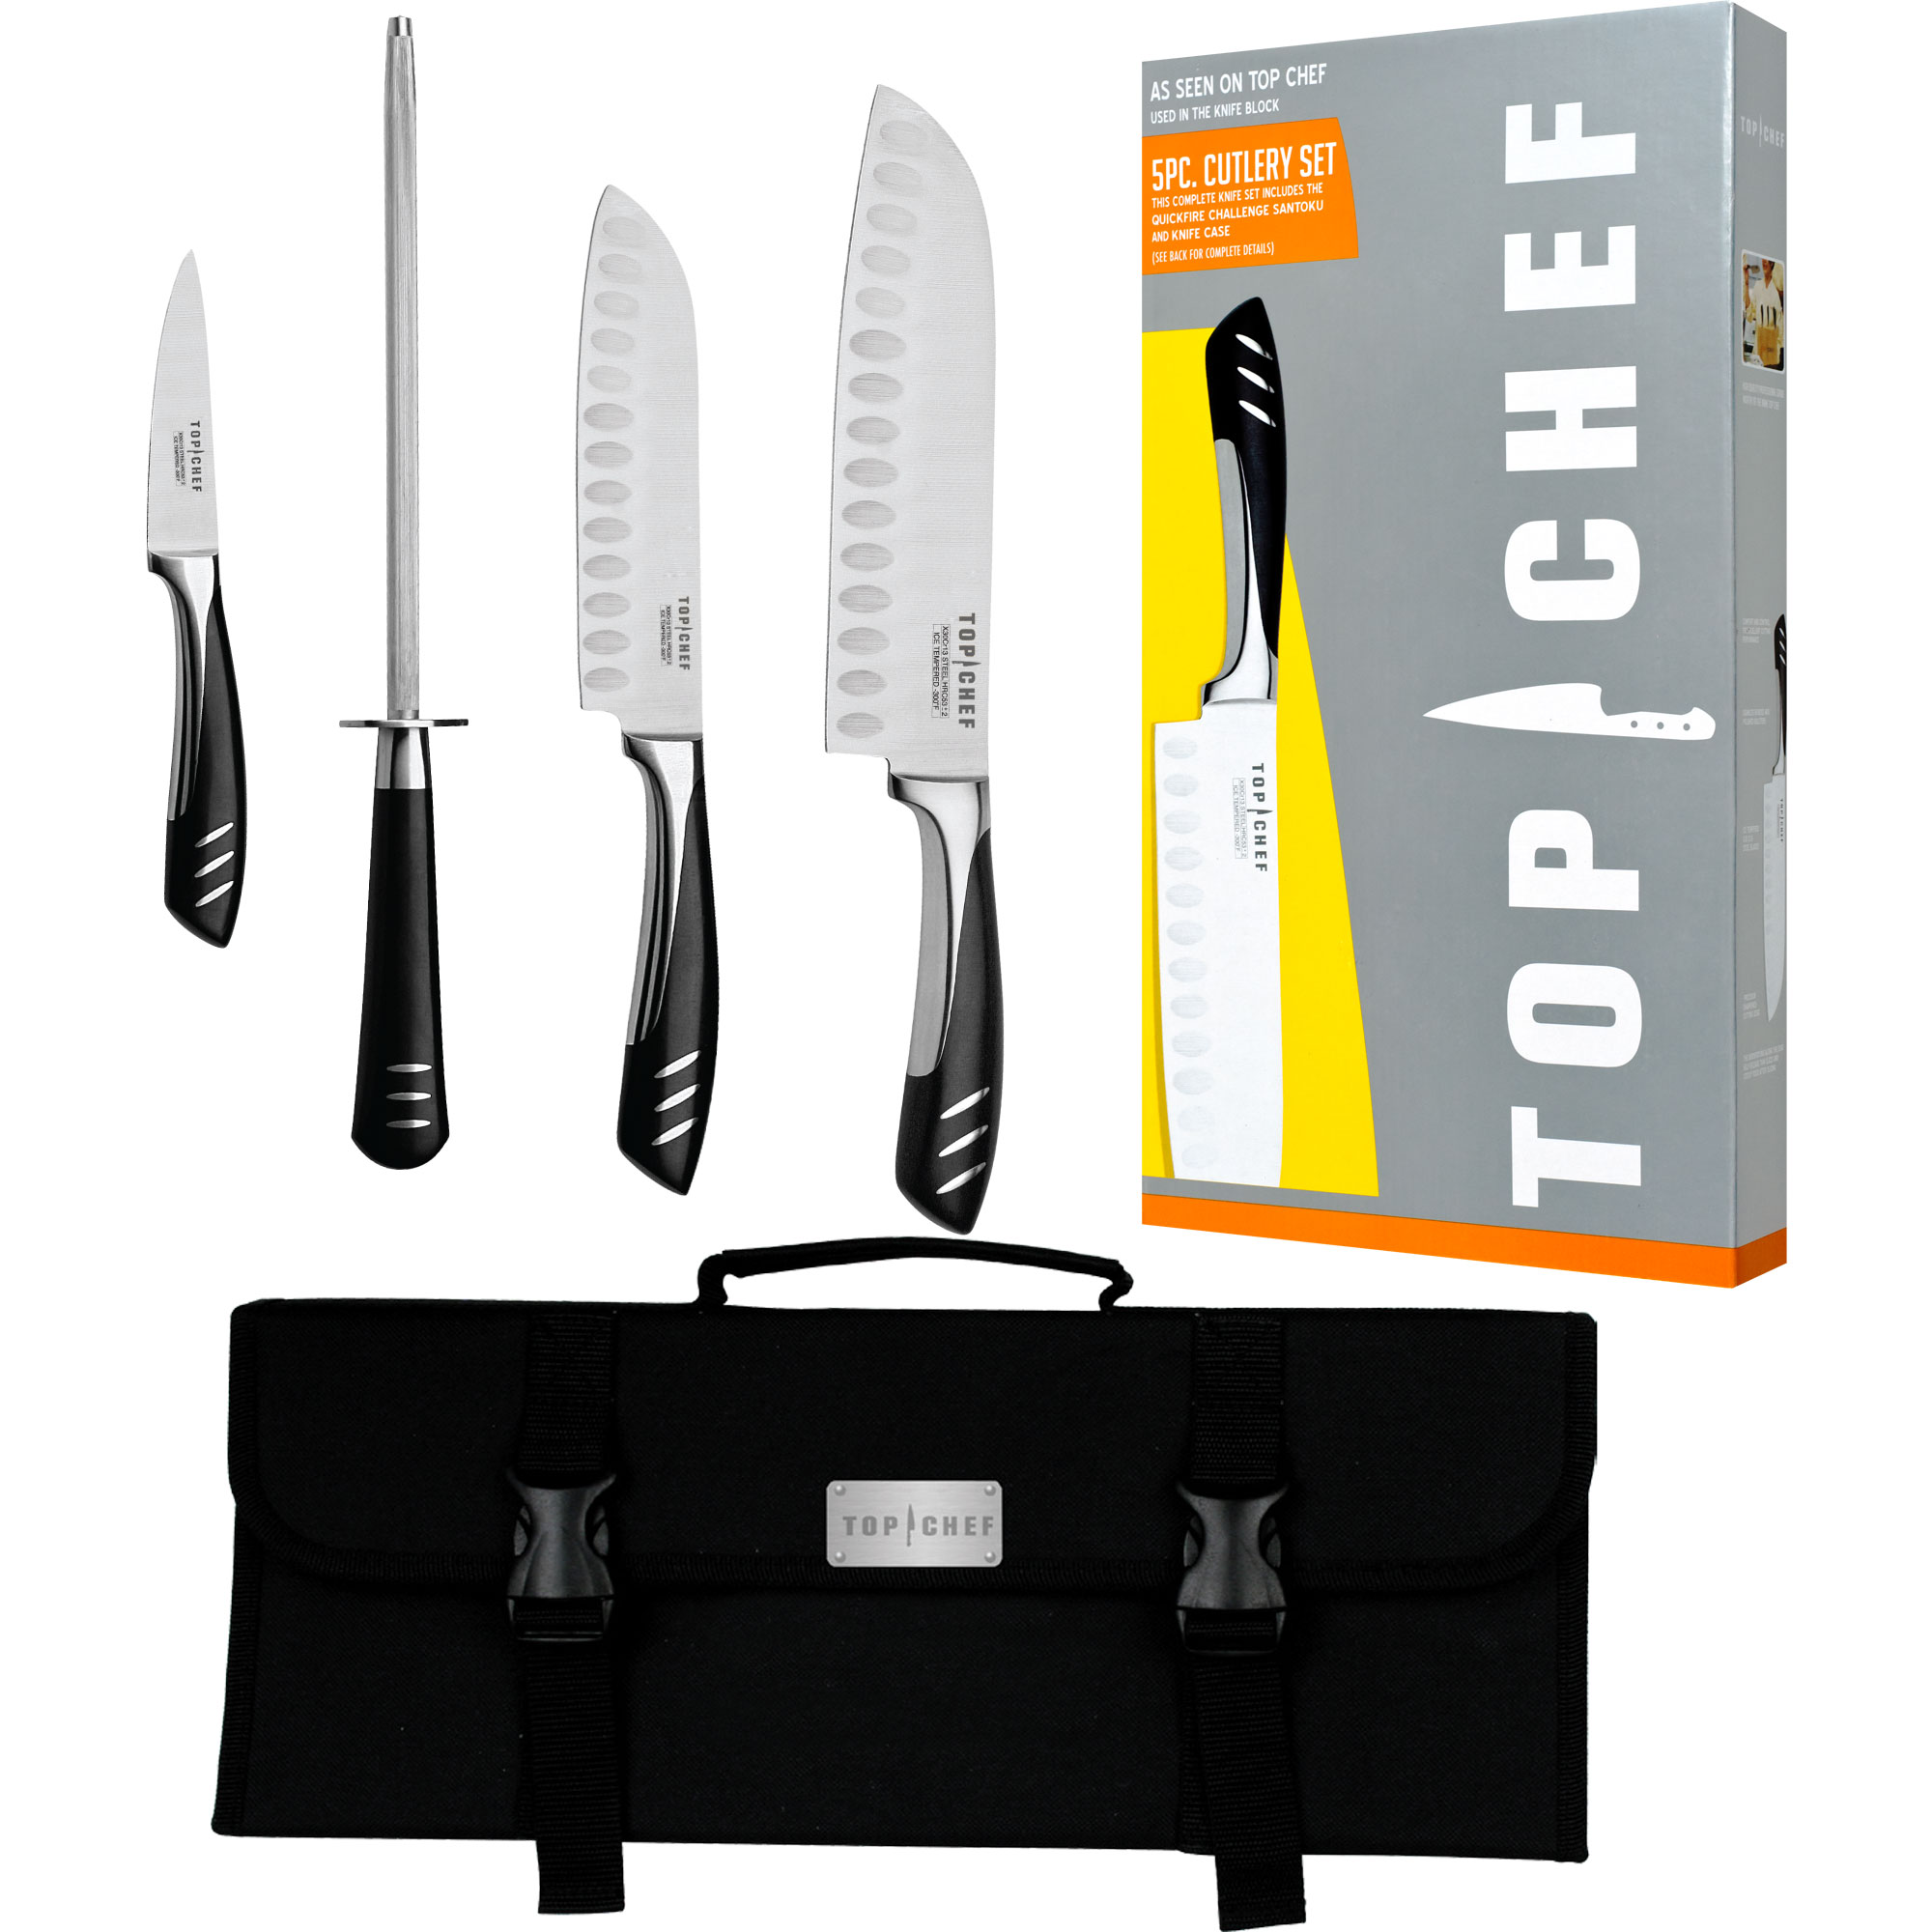 Top Chef 5-Piece Knife Set Including Carrying Case